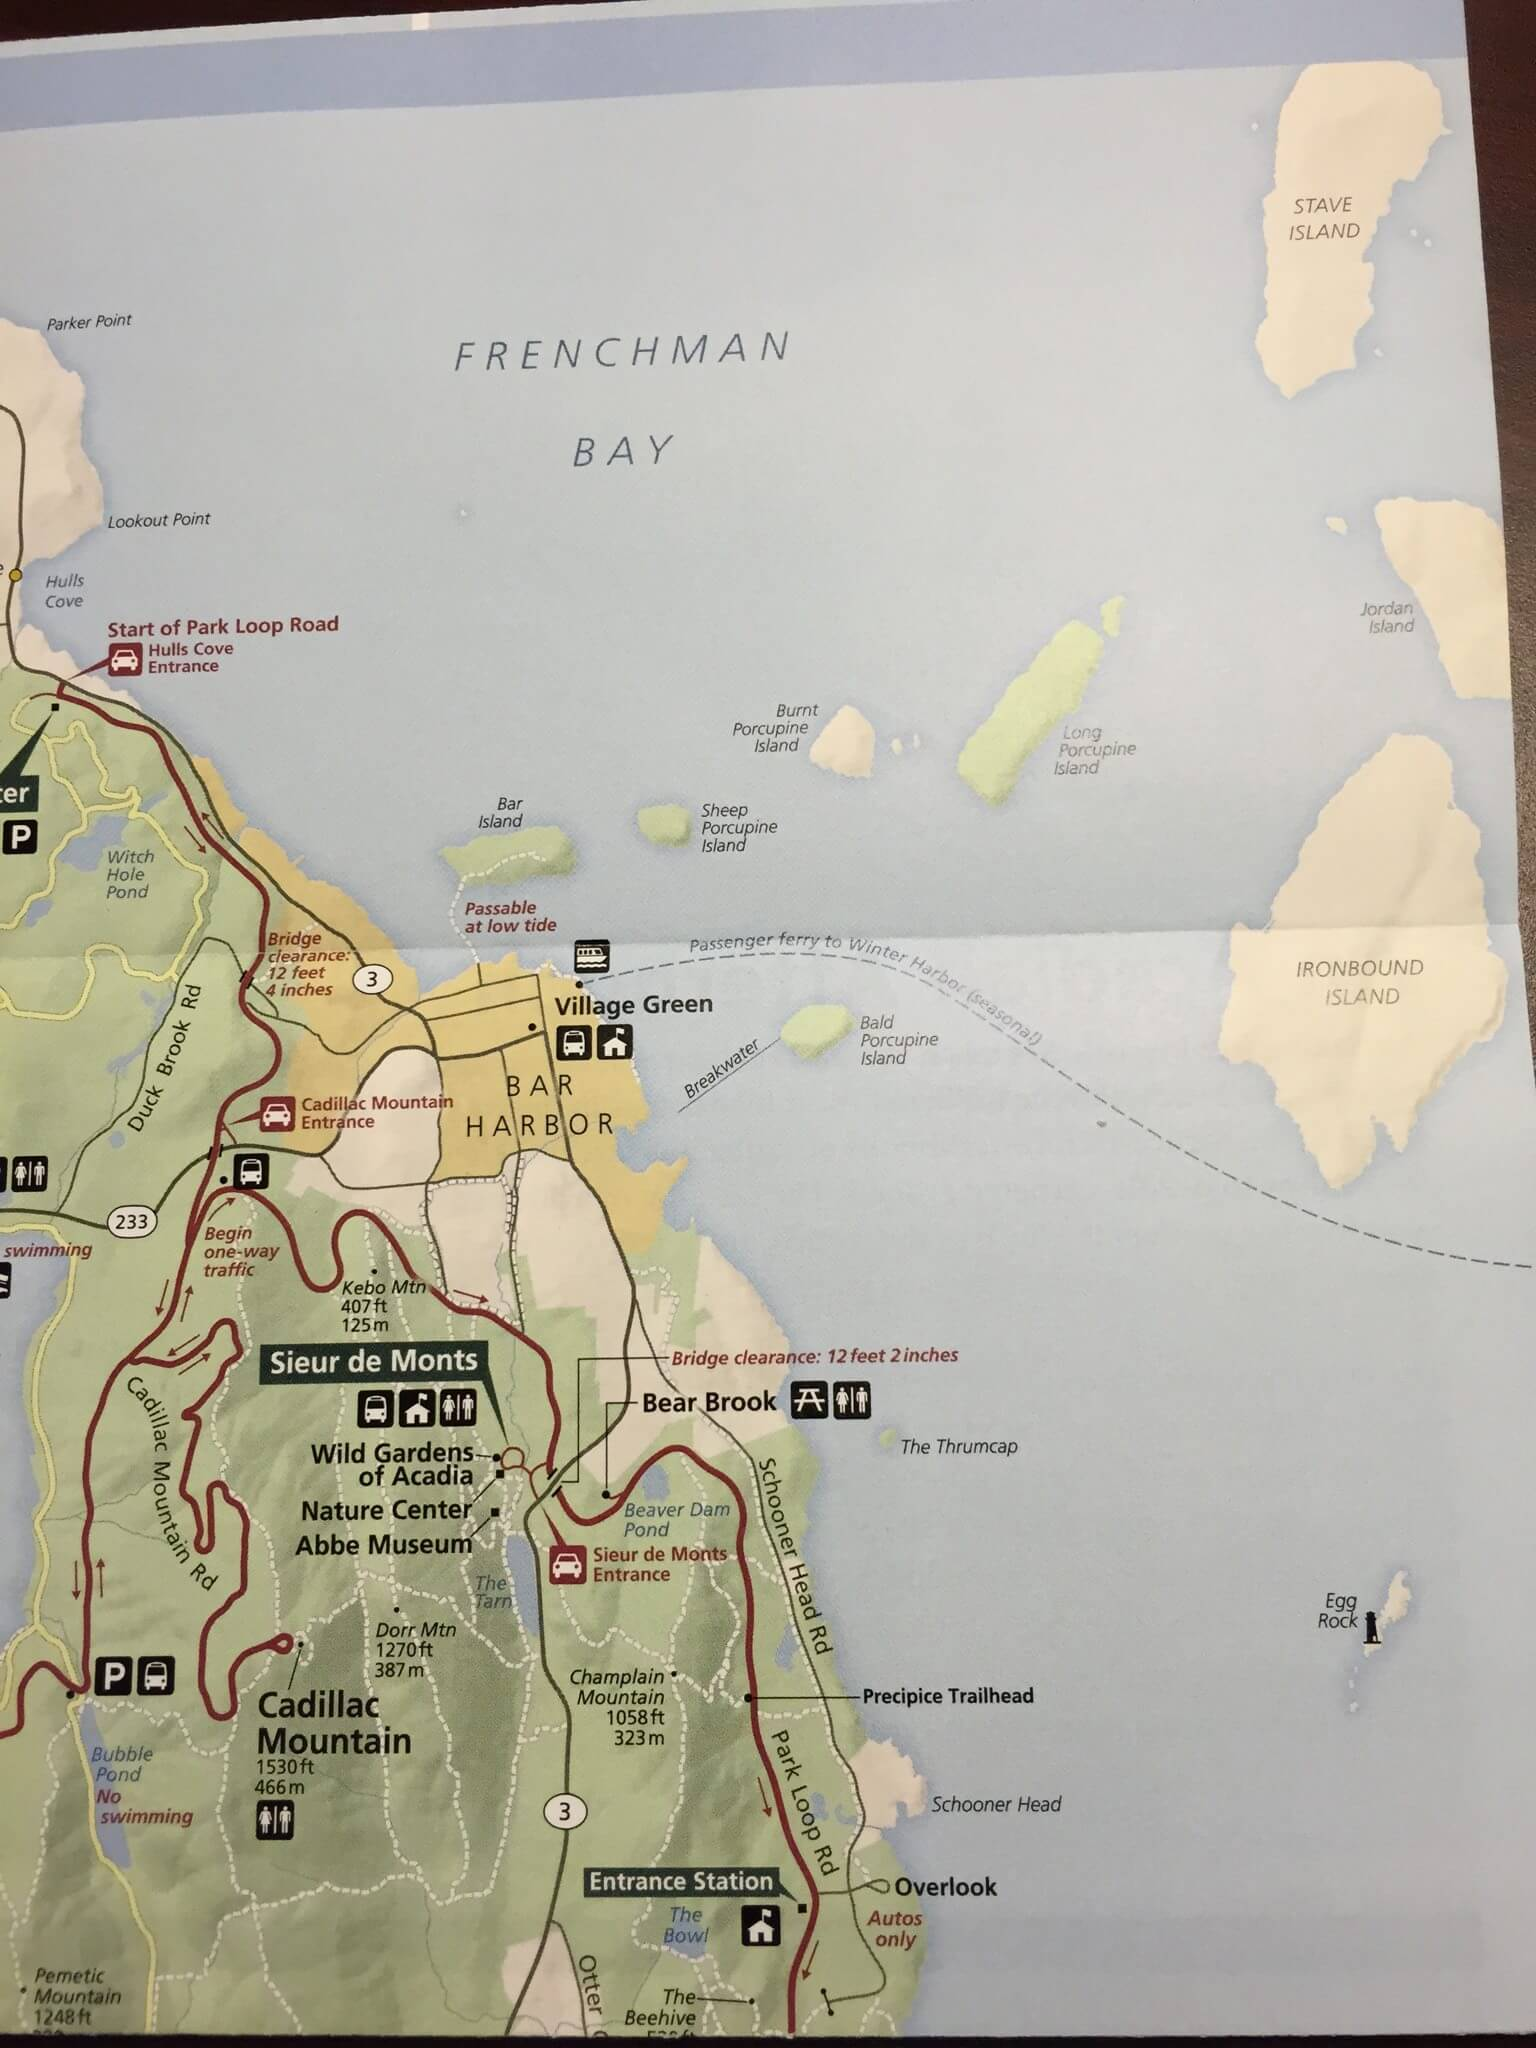 Map of Frenchman Bay and the Porcupine Islands, Acadia National Park